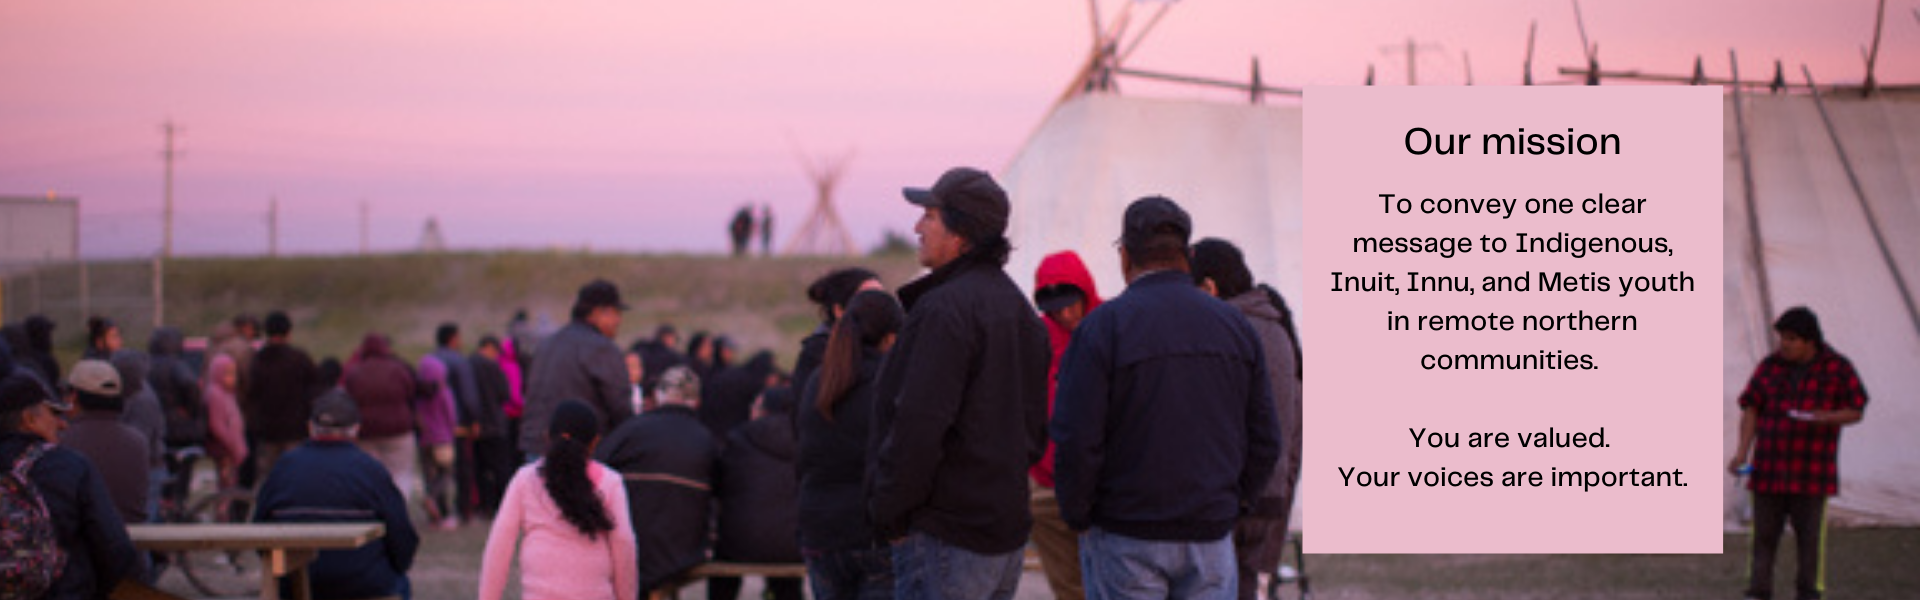 ArtsCan Circle—a registered charity dedicated to confronting the multiple realities and inequalities facing First Nations, Innu, Inuit and Métis youth in remote, Northern communities.